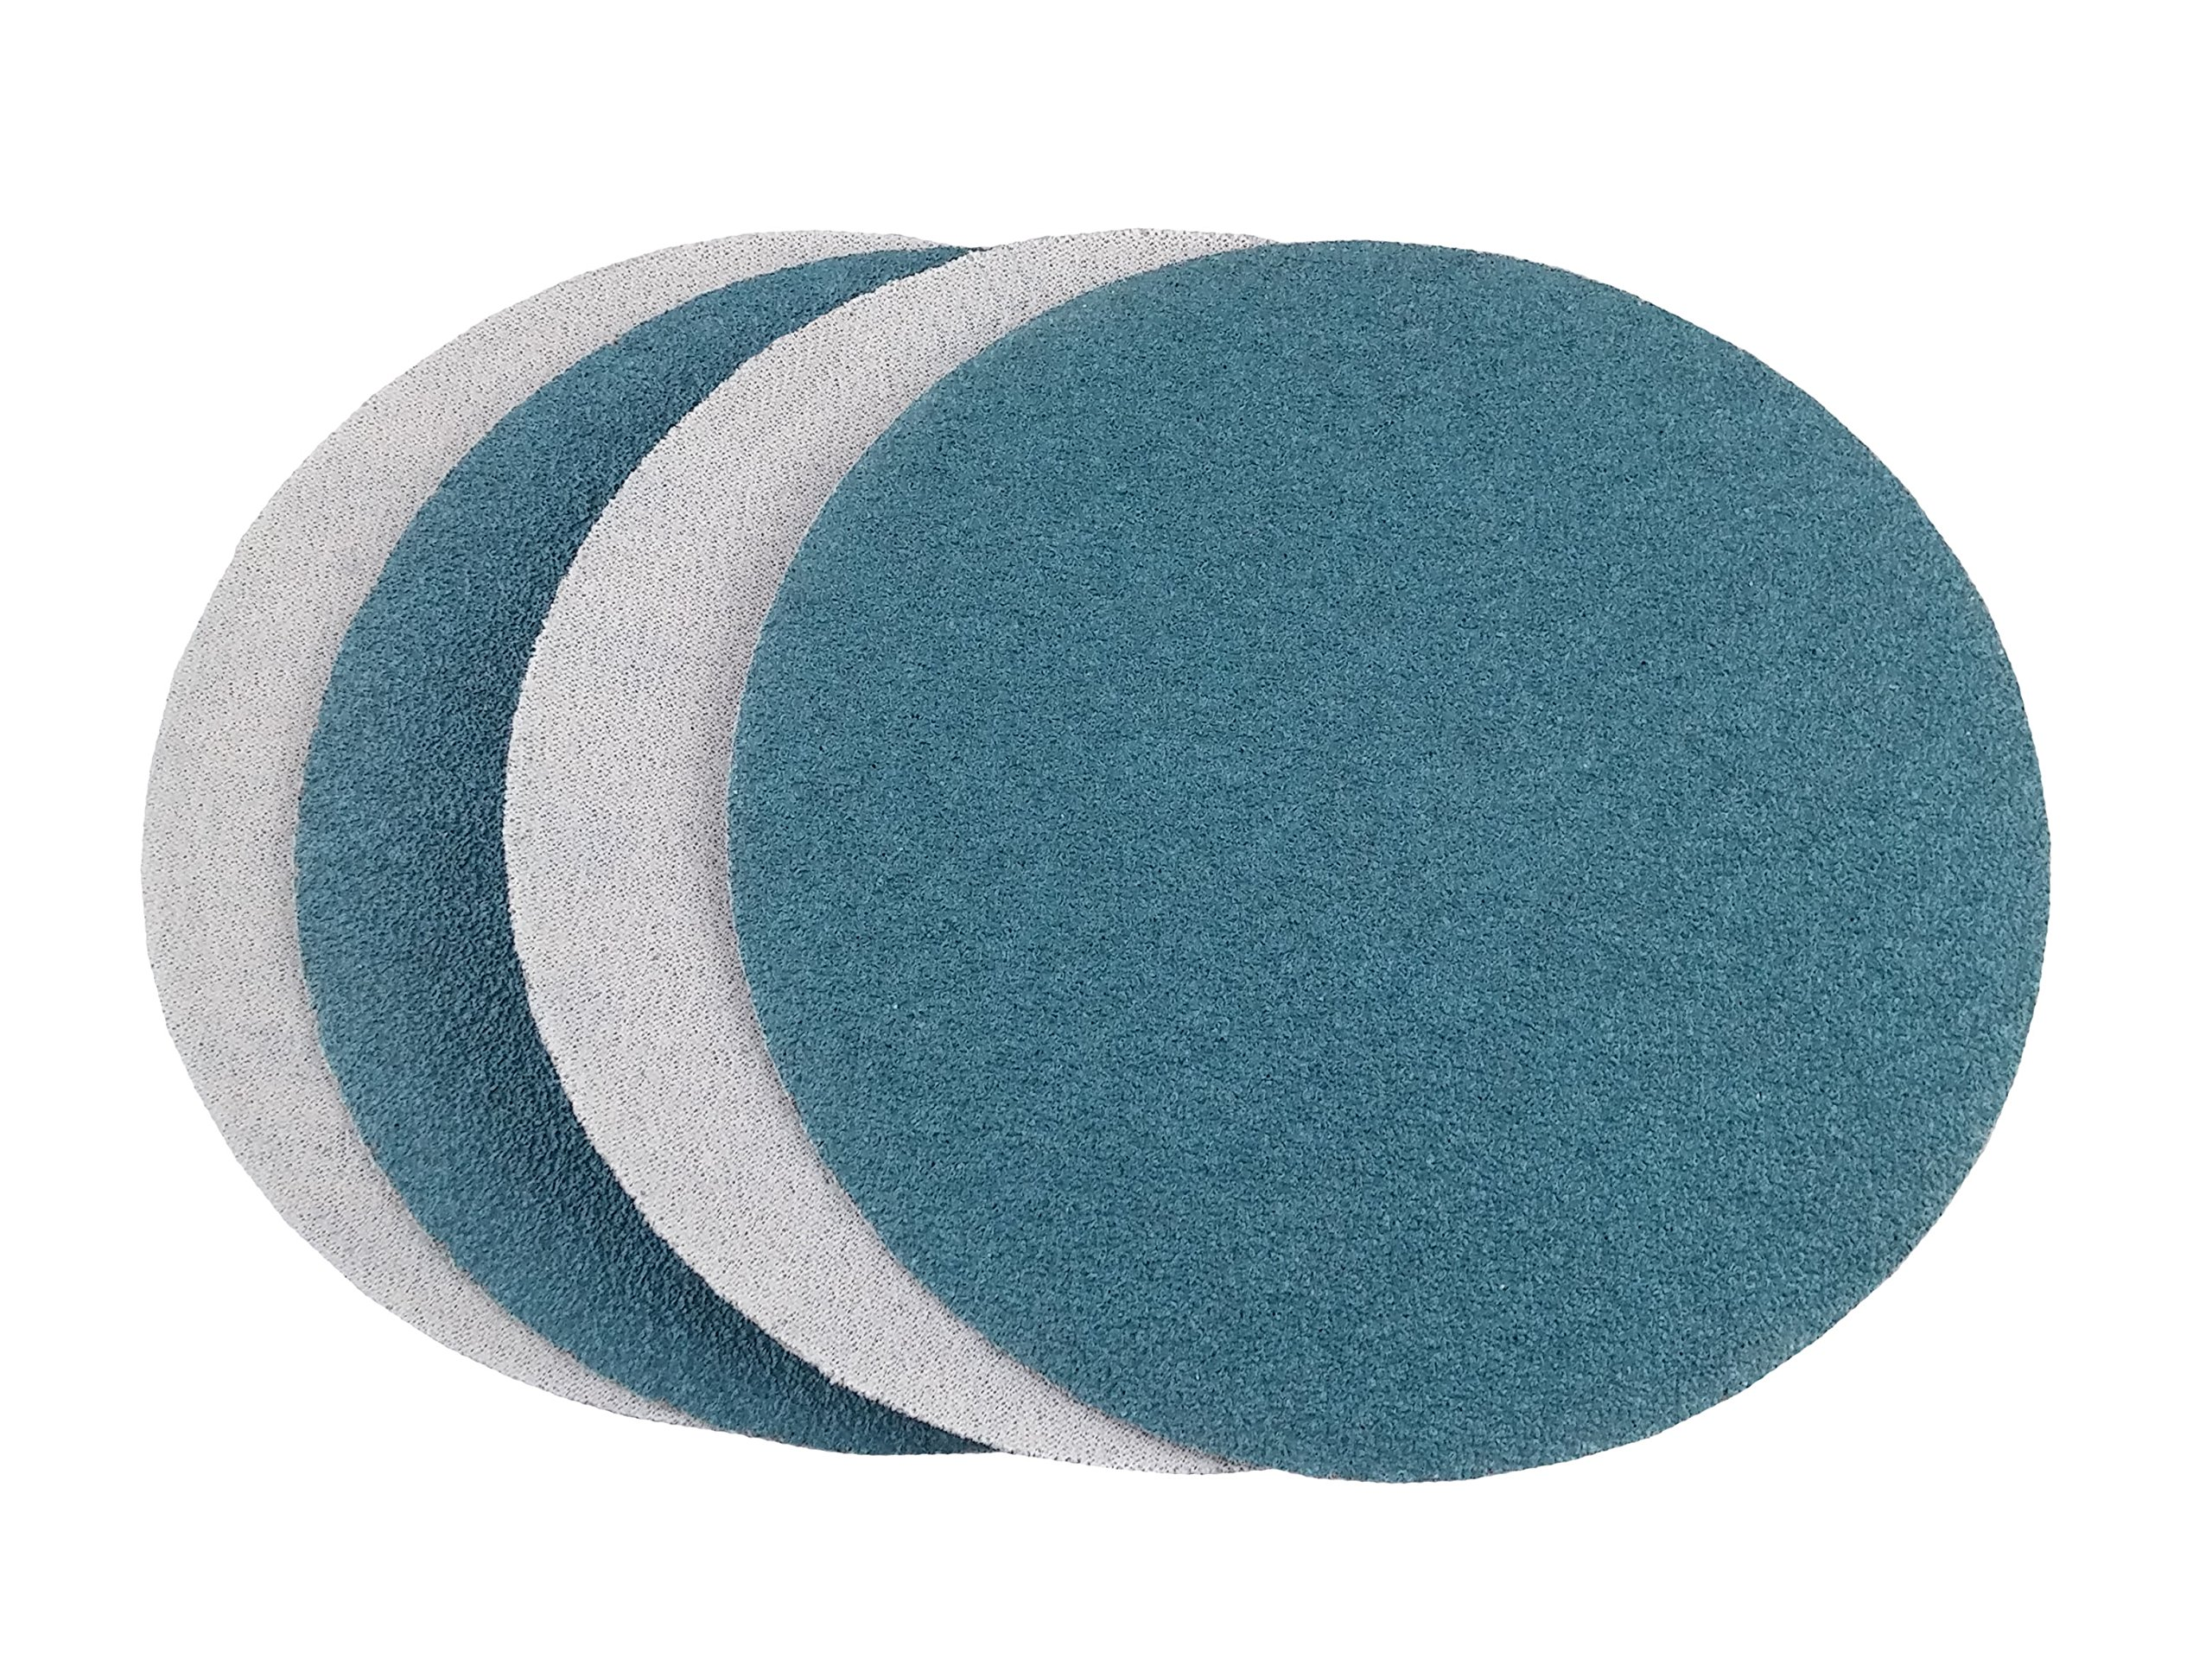 8'' Blue Zirconia Cloth Hook and Loop Sanding Discs (50 Pack, 80 Grit) by Perfect Sanding Supply by Abrasive Resource (Image #2)